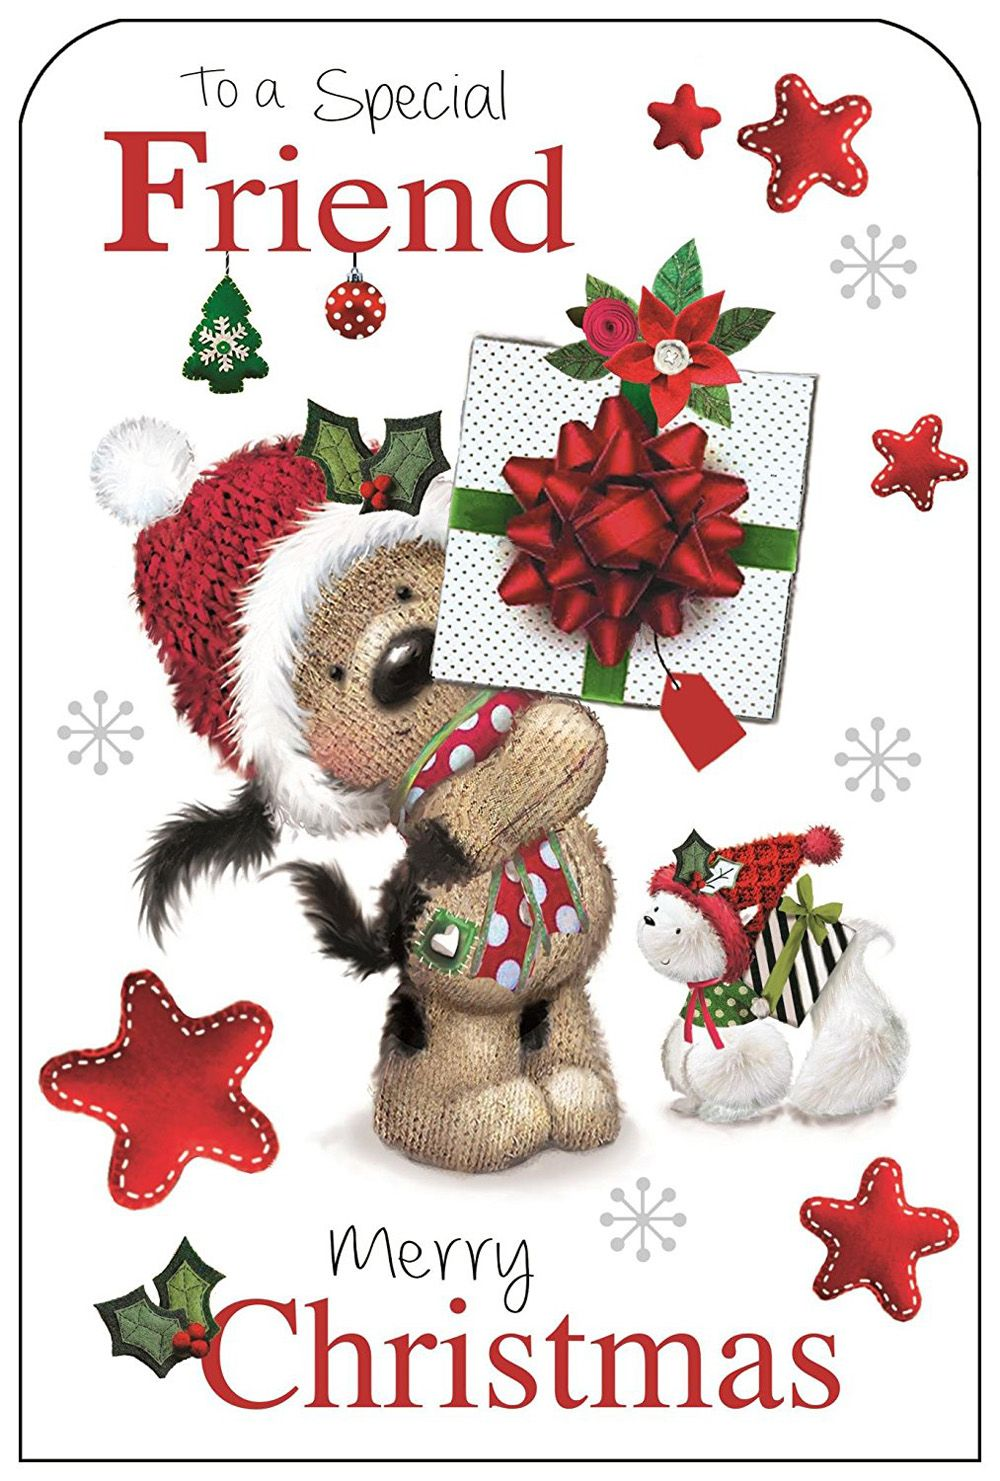 30 Christmas Greetings For A Friend To Make Them Happy Some Events Christmas Greetings For Friends Christmas Greetings Baby S First Christmas Card